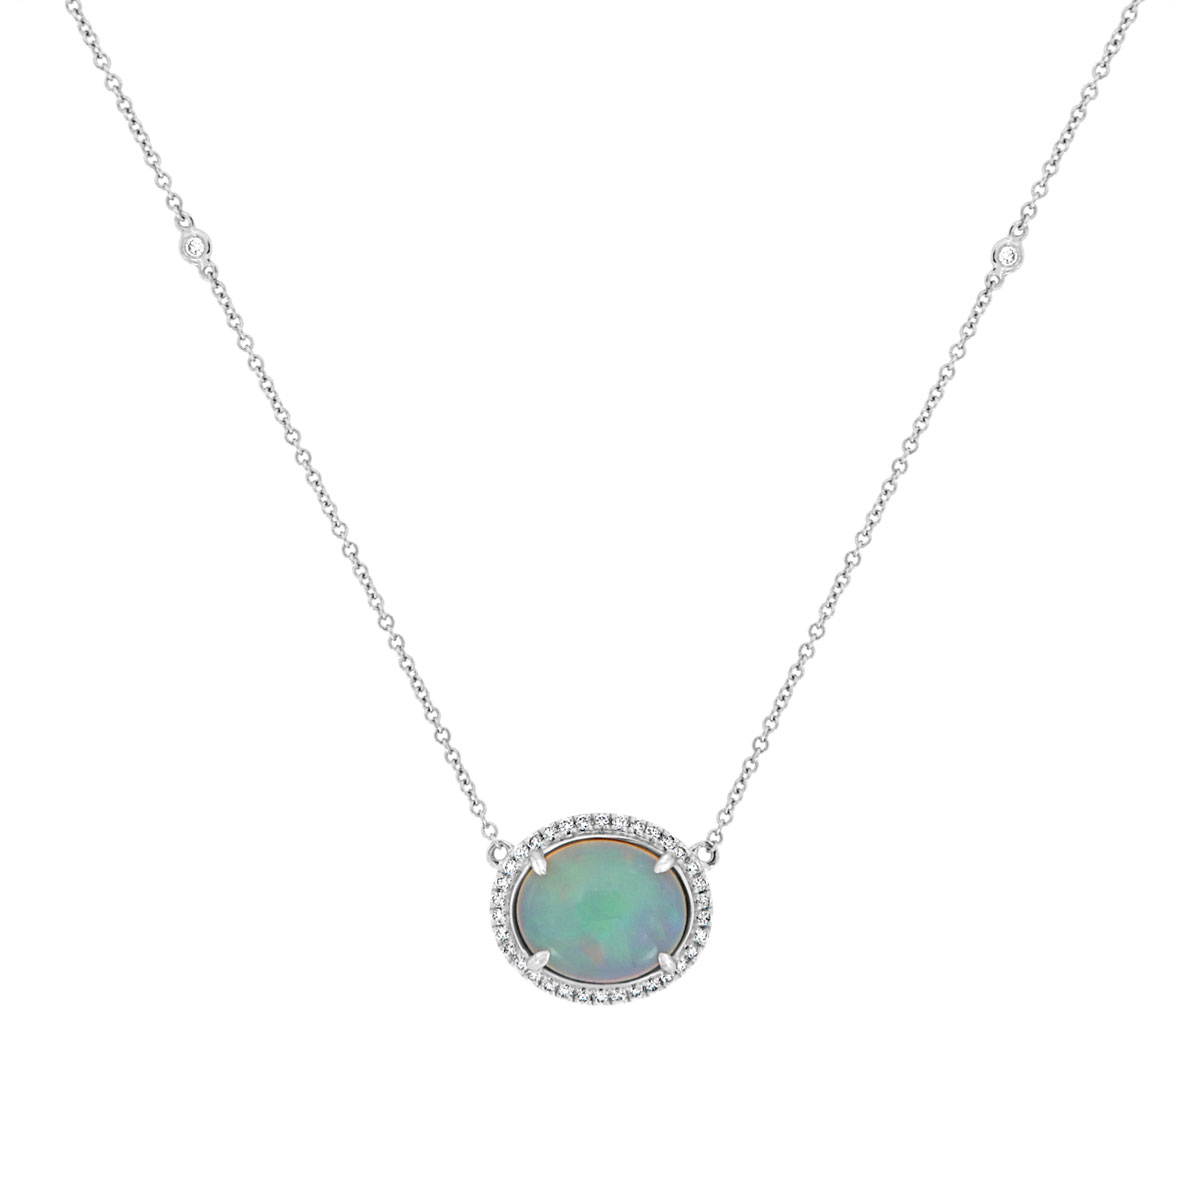 18K White Gold Opal & Diamonds Necklace ( 3 1/2 ct. tw)